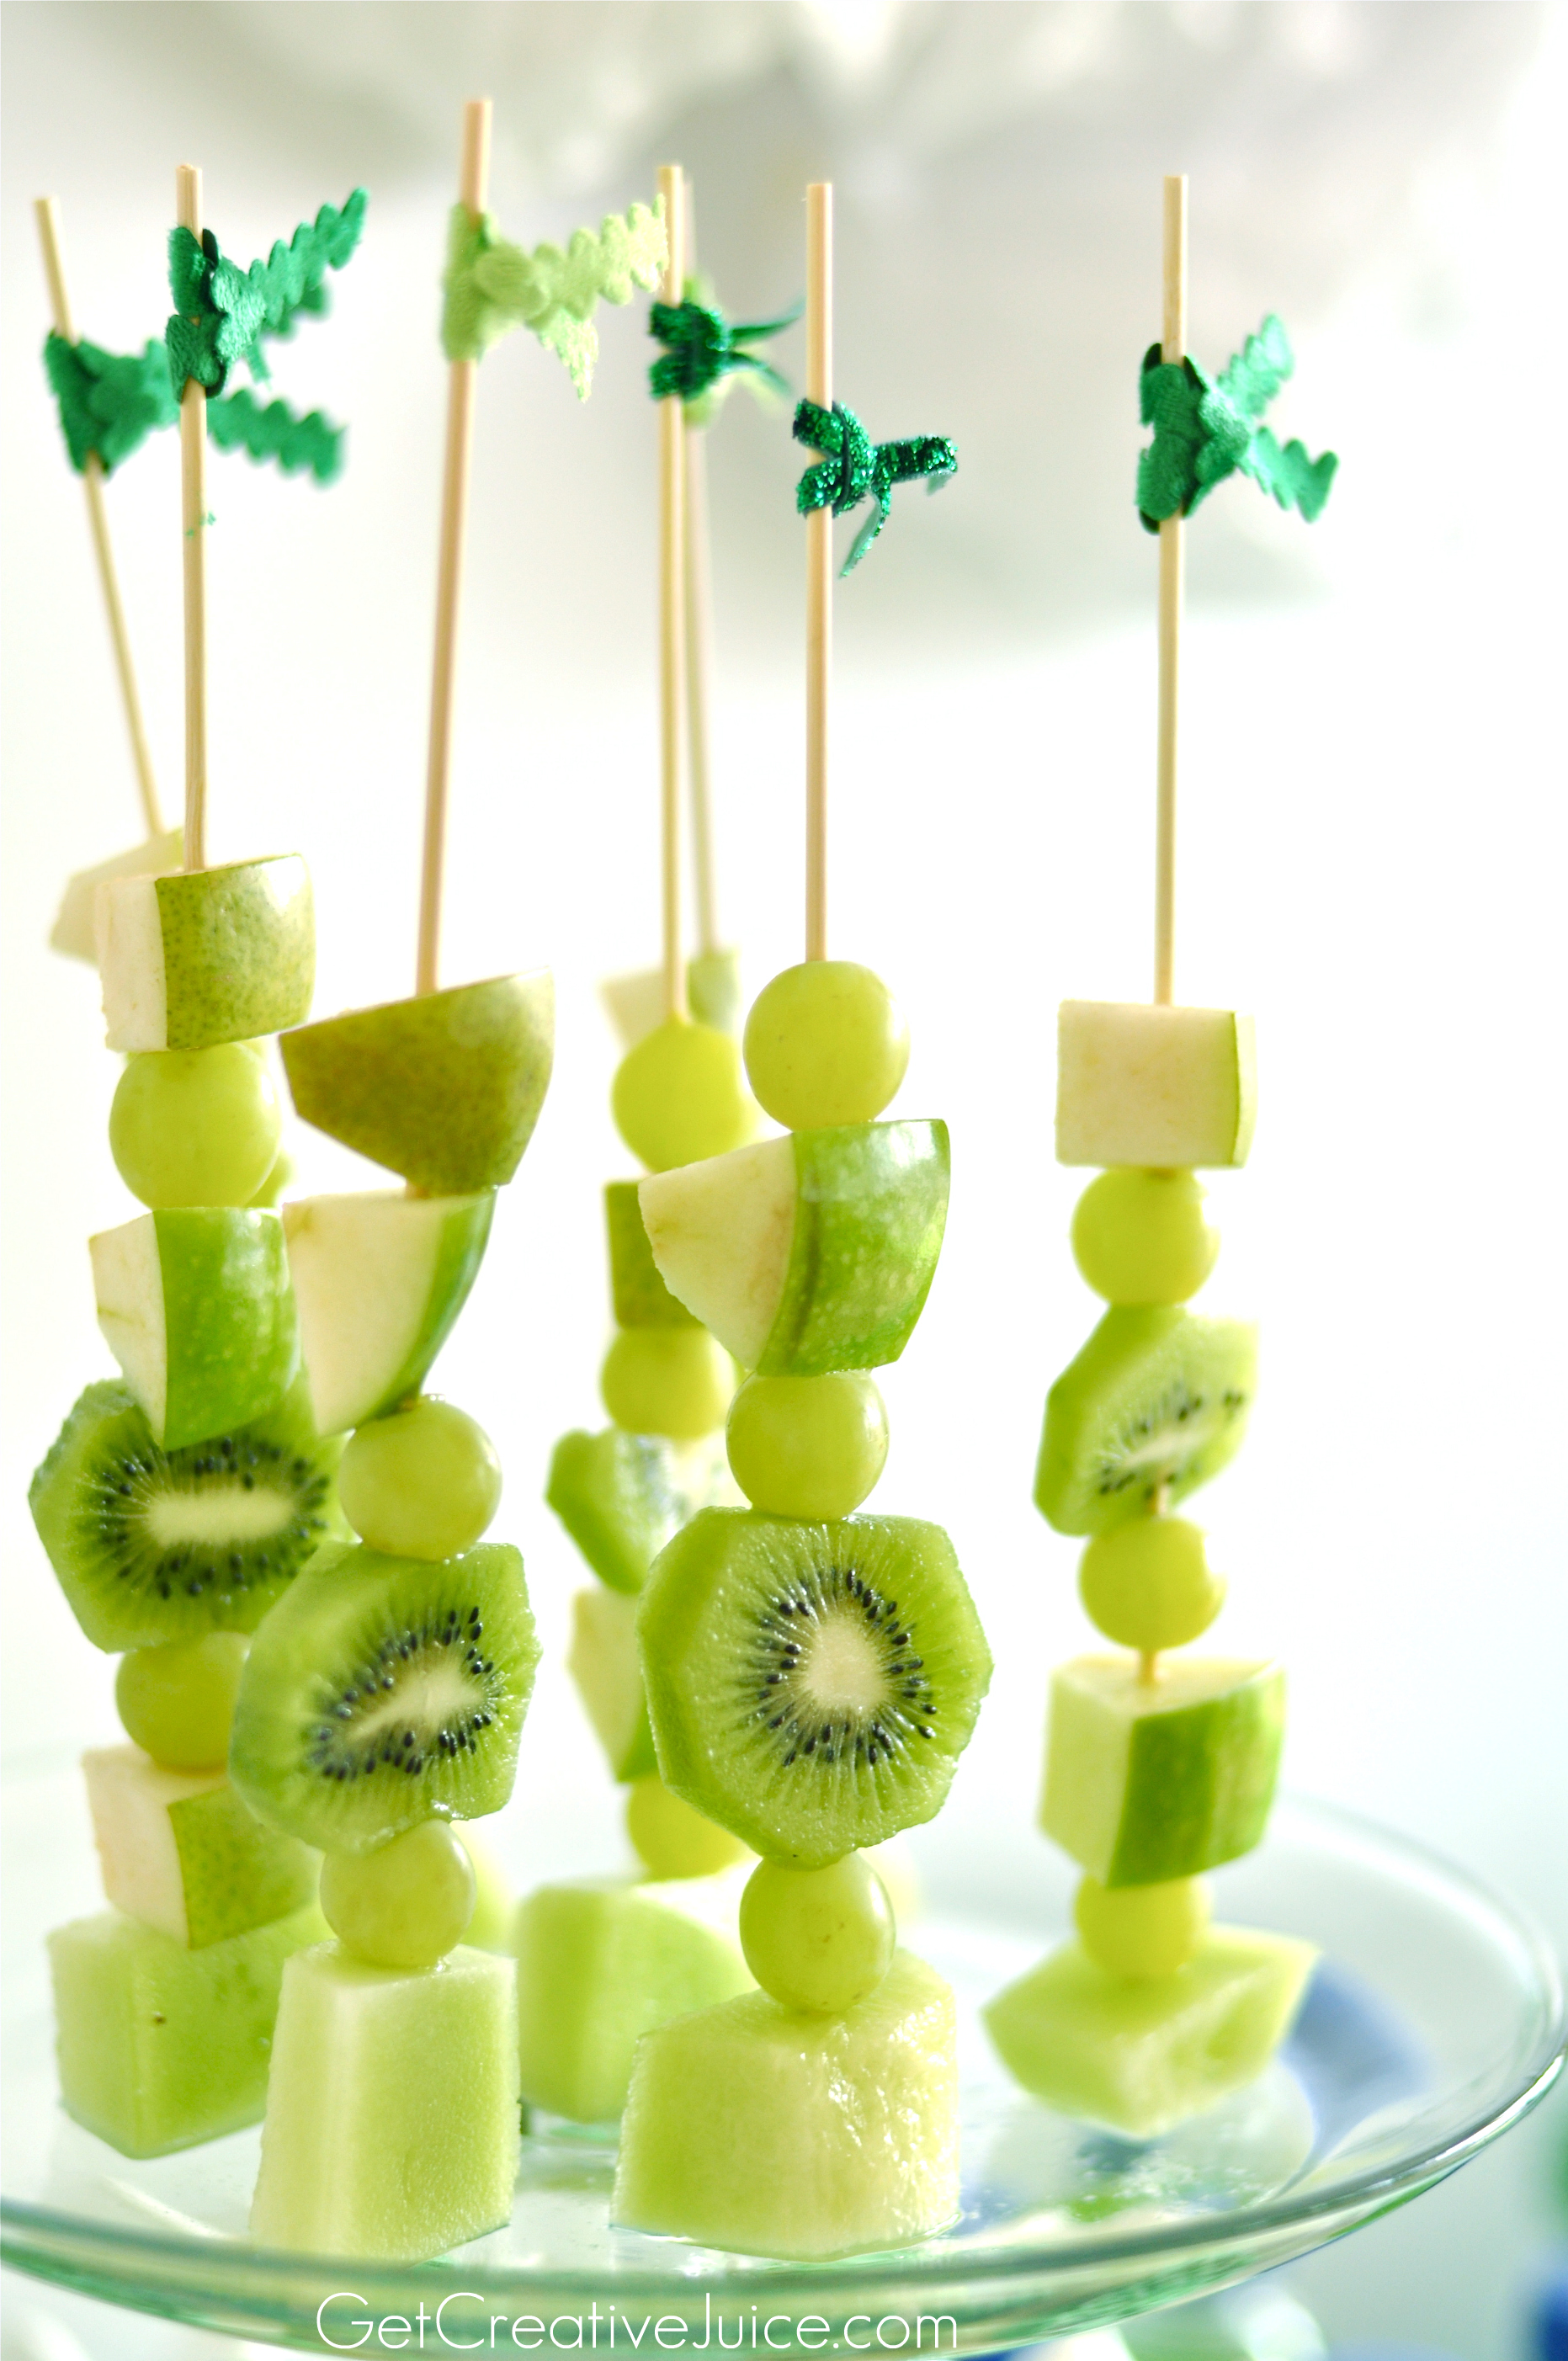 Easy Fruit Recipe | 13 Healthy Green Eats To Celebrate The Luck Of The Irish